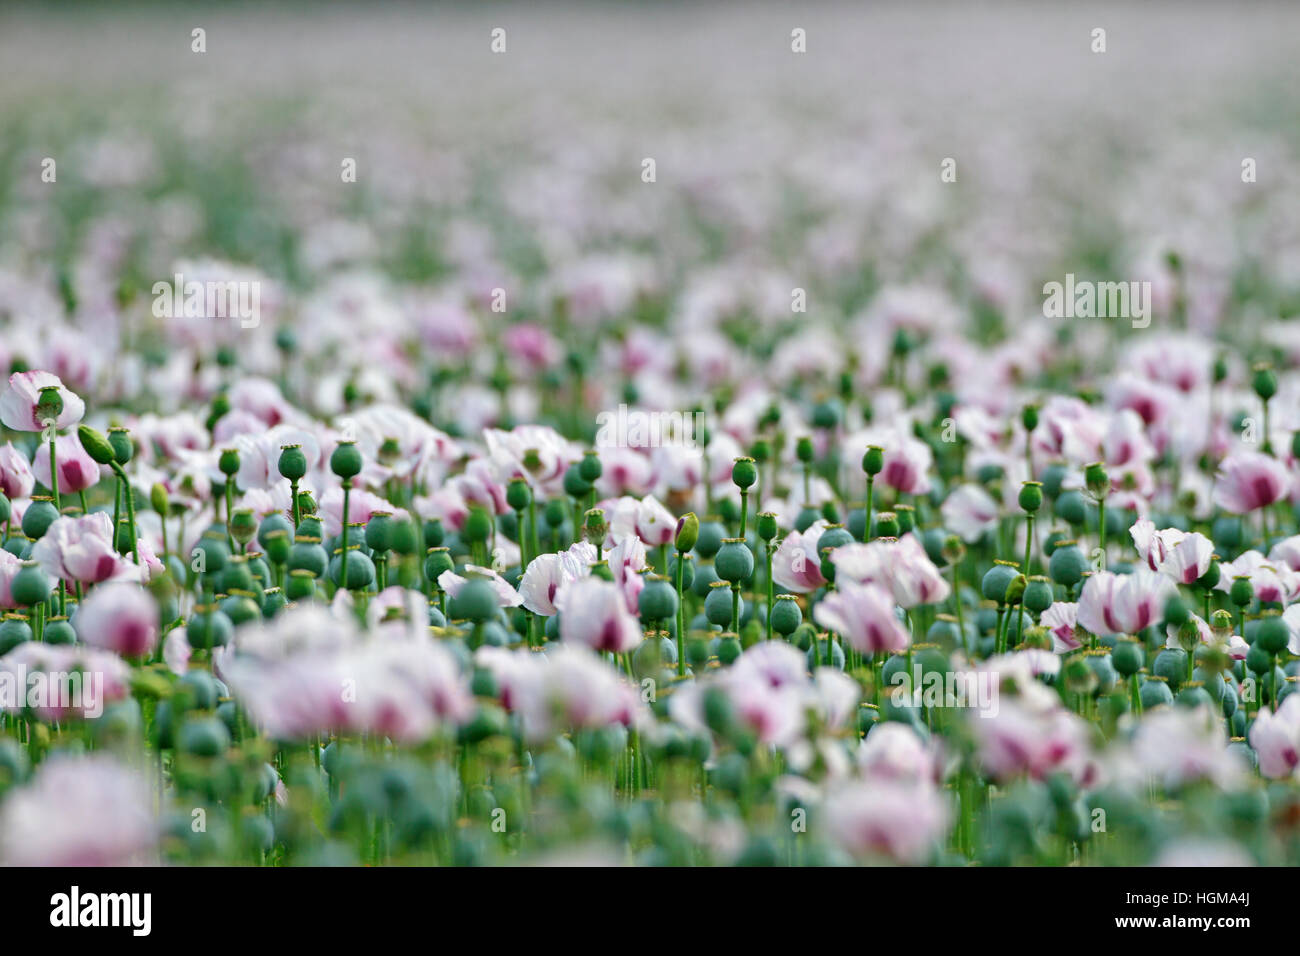 Poppies growing on English farmland for medicines. - Stock Image